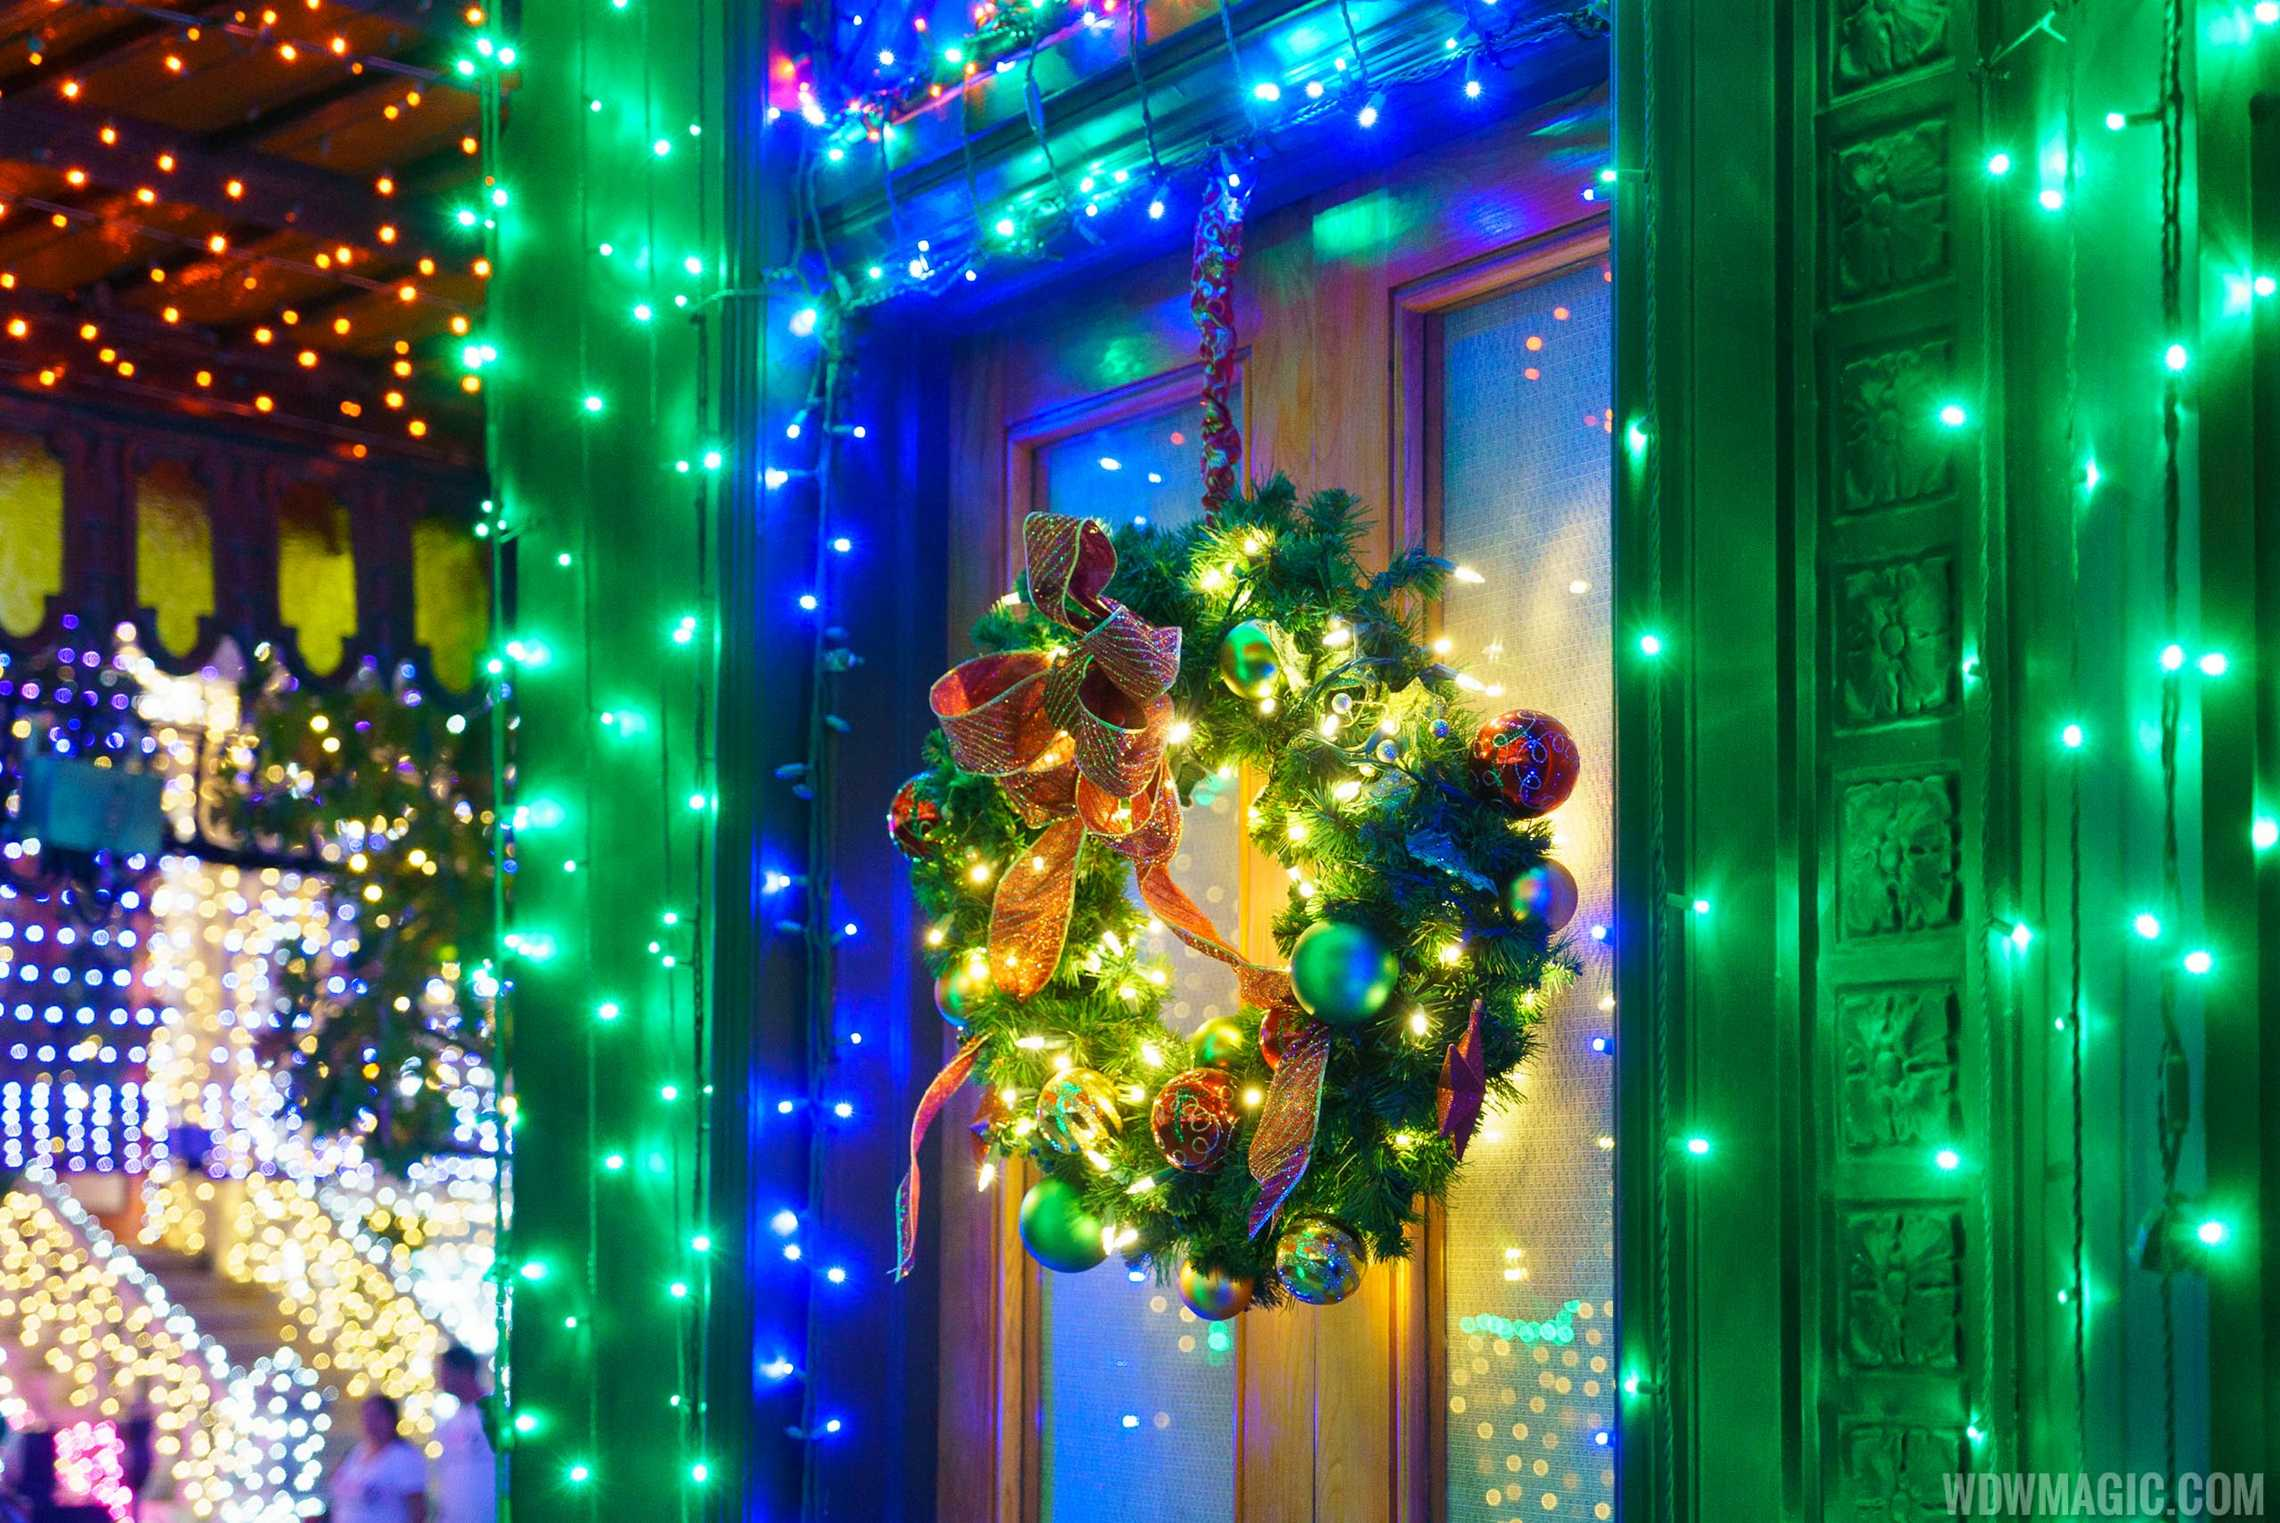 Close-up of details at the Osborne Family Spectacle of Dancing Lights